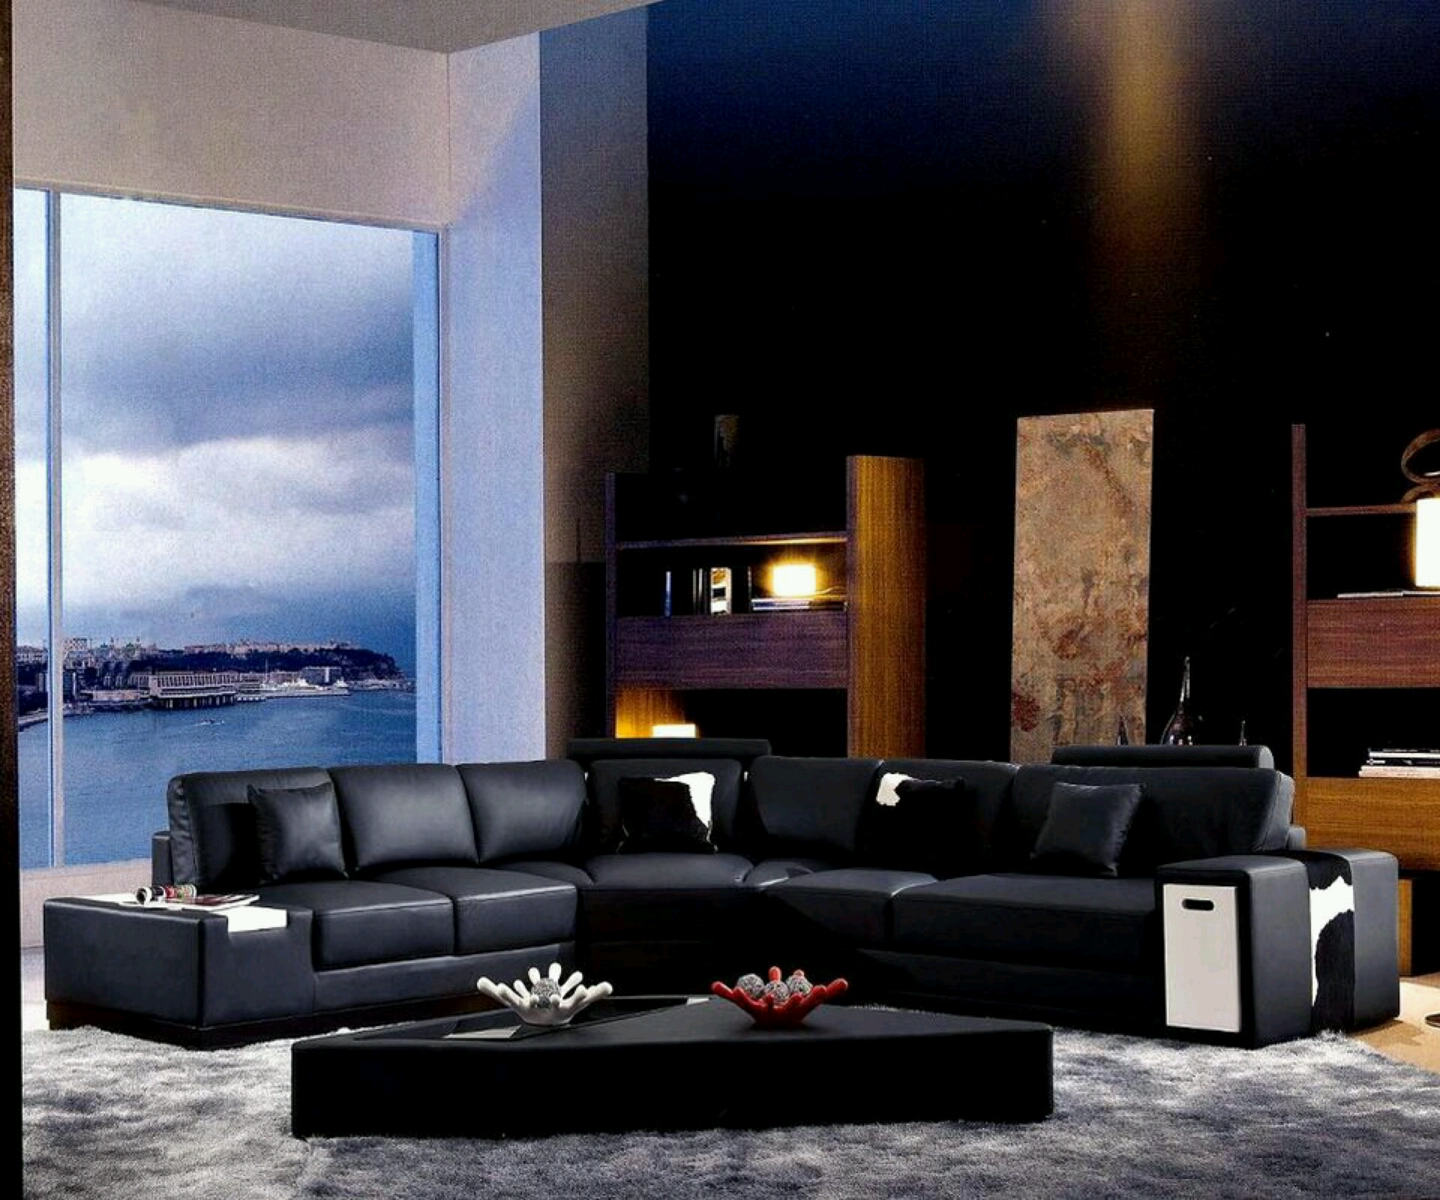 New home designs latest luxury living rooms interior for New living room designs